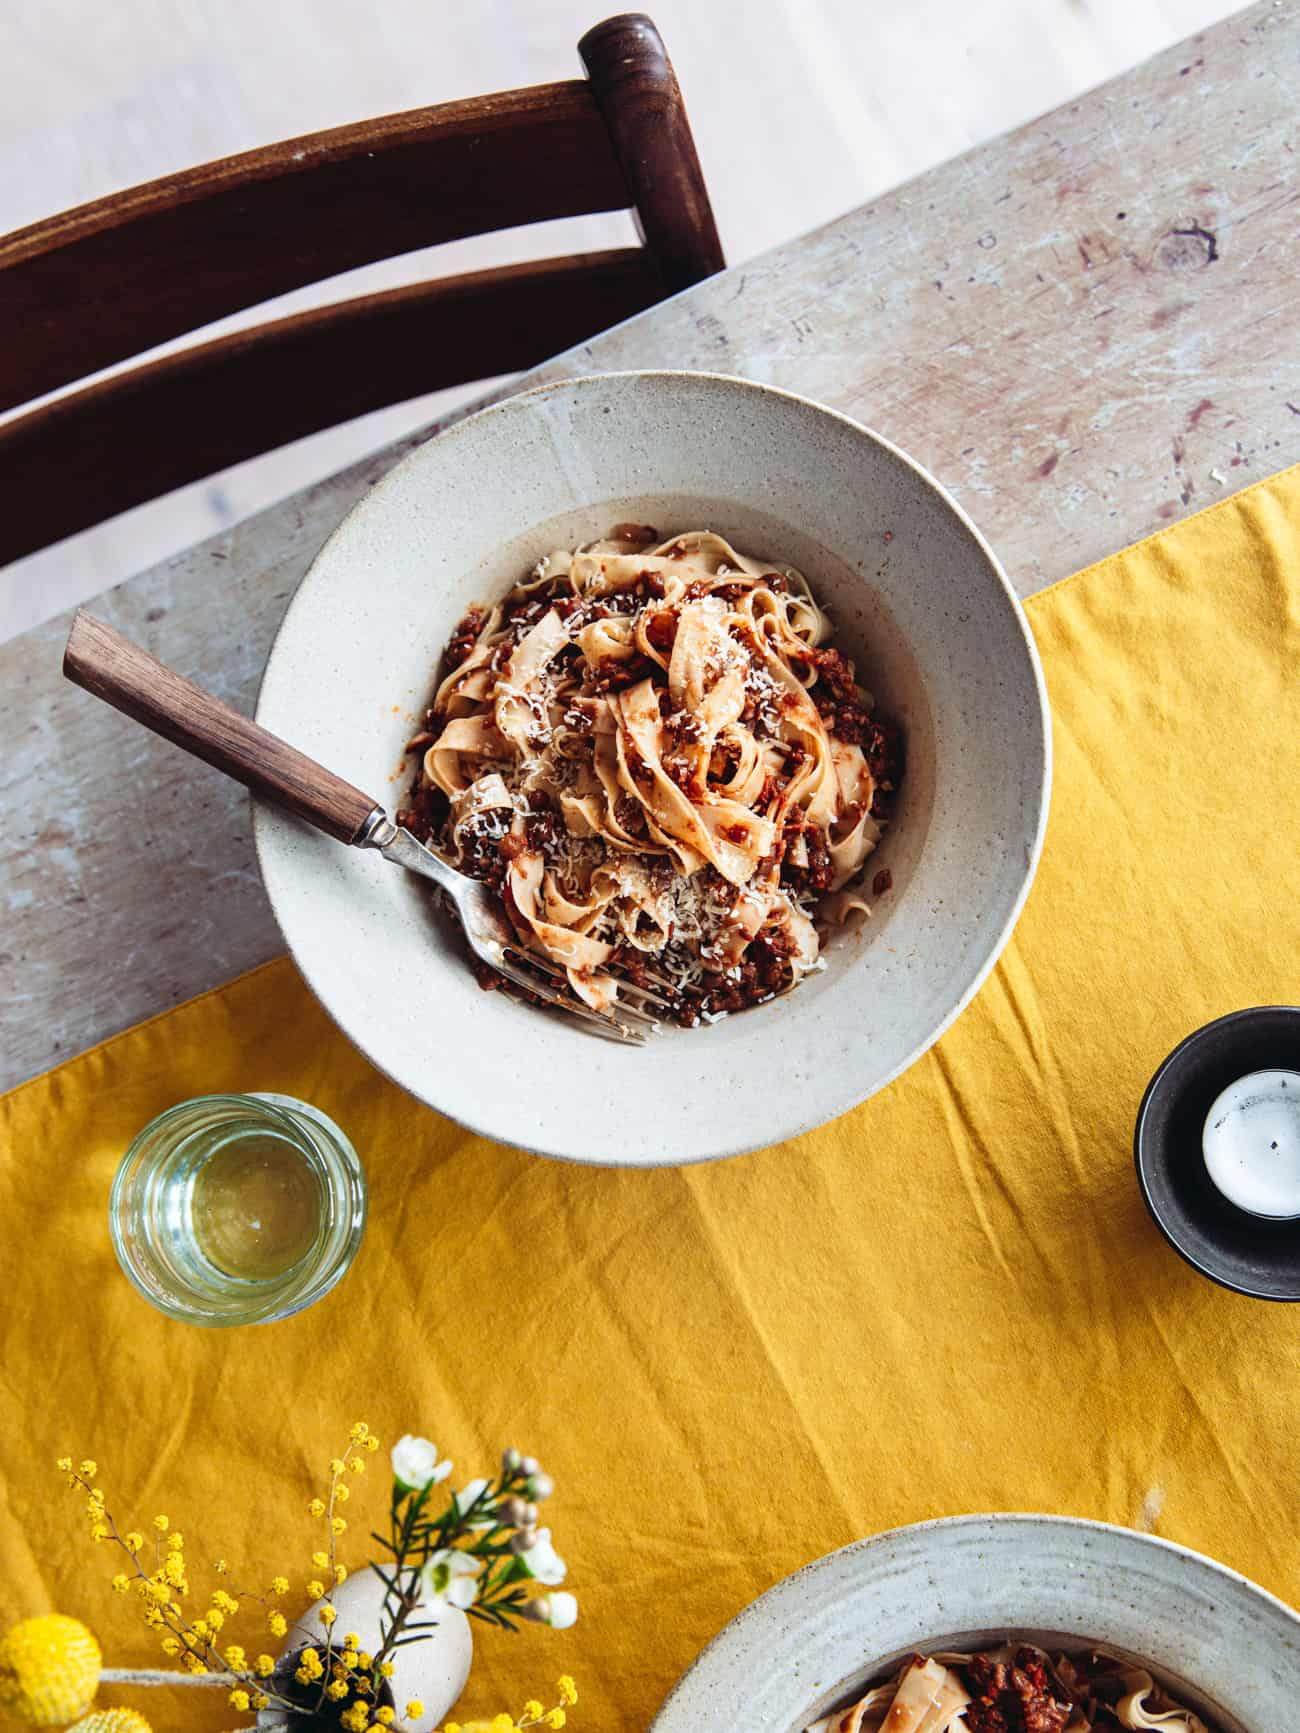 A bowl of tagliatelle with lentil ragu on a table